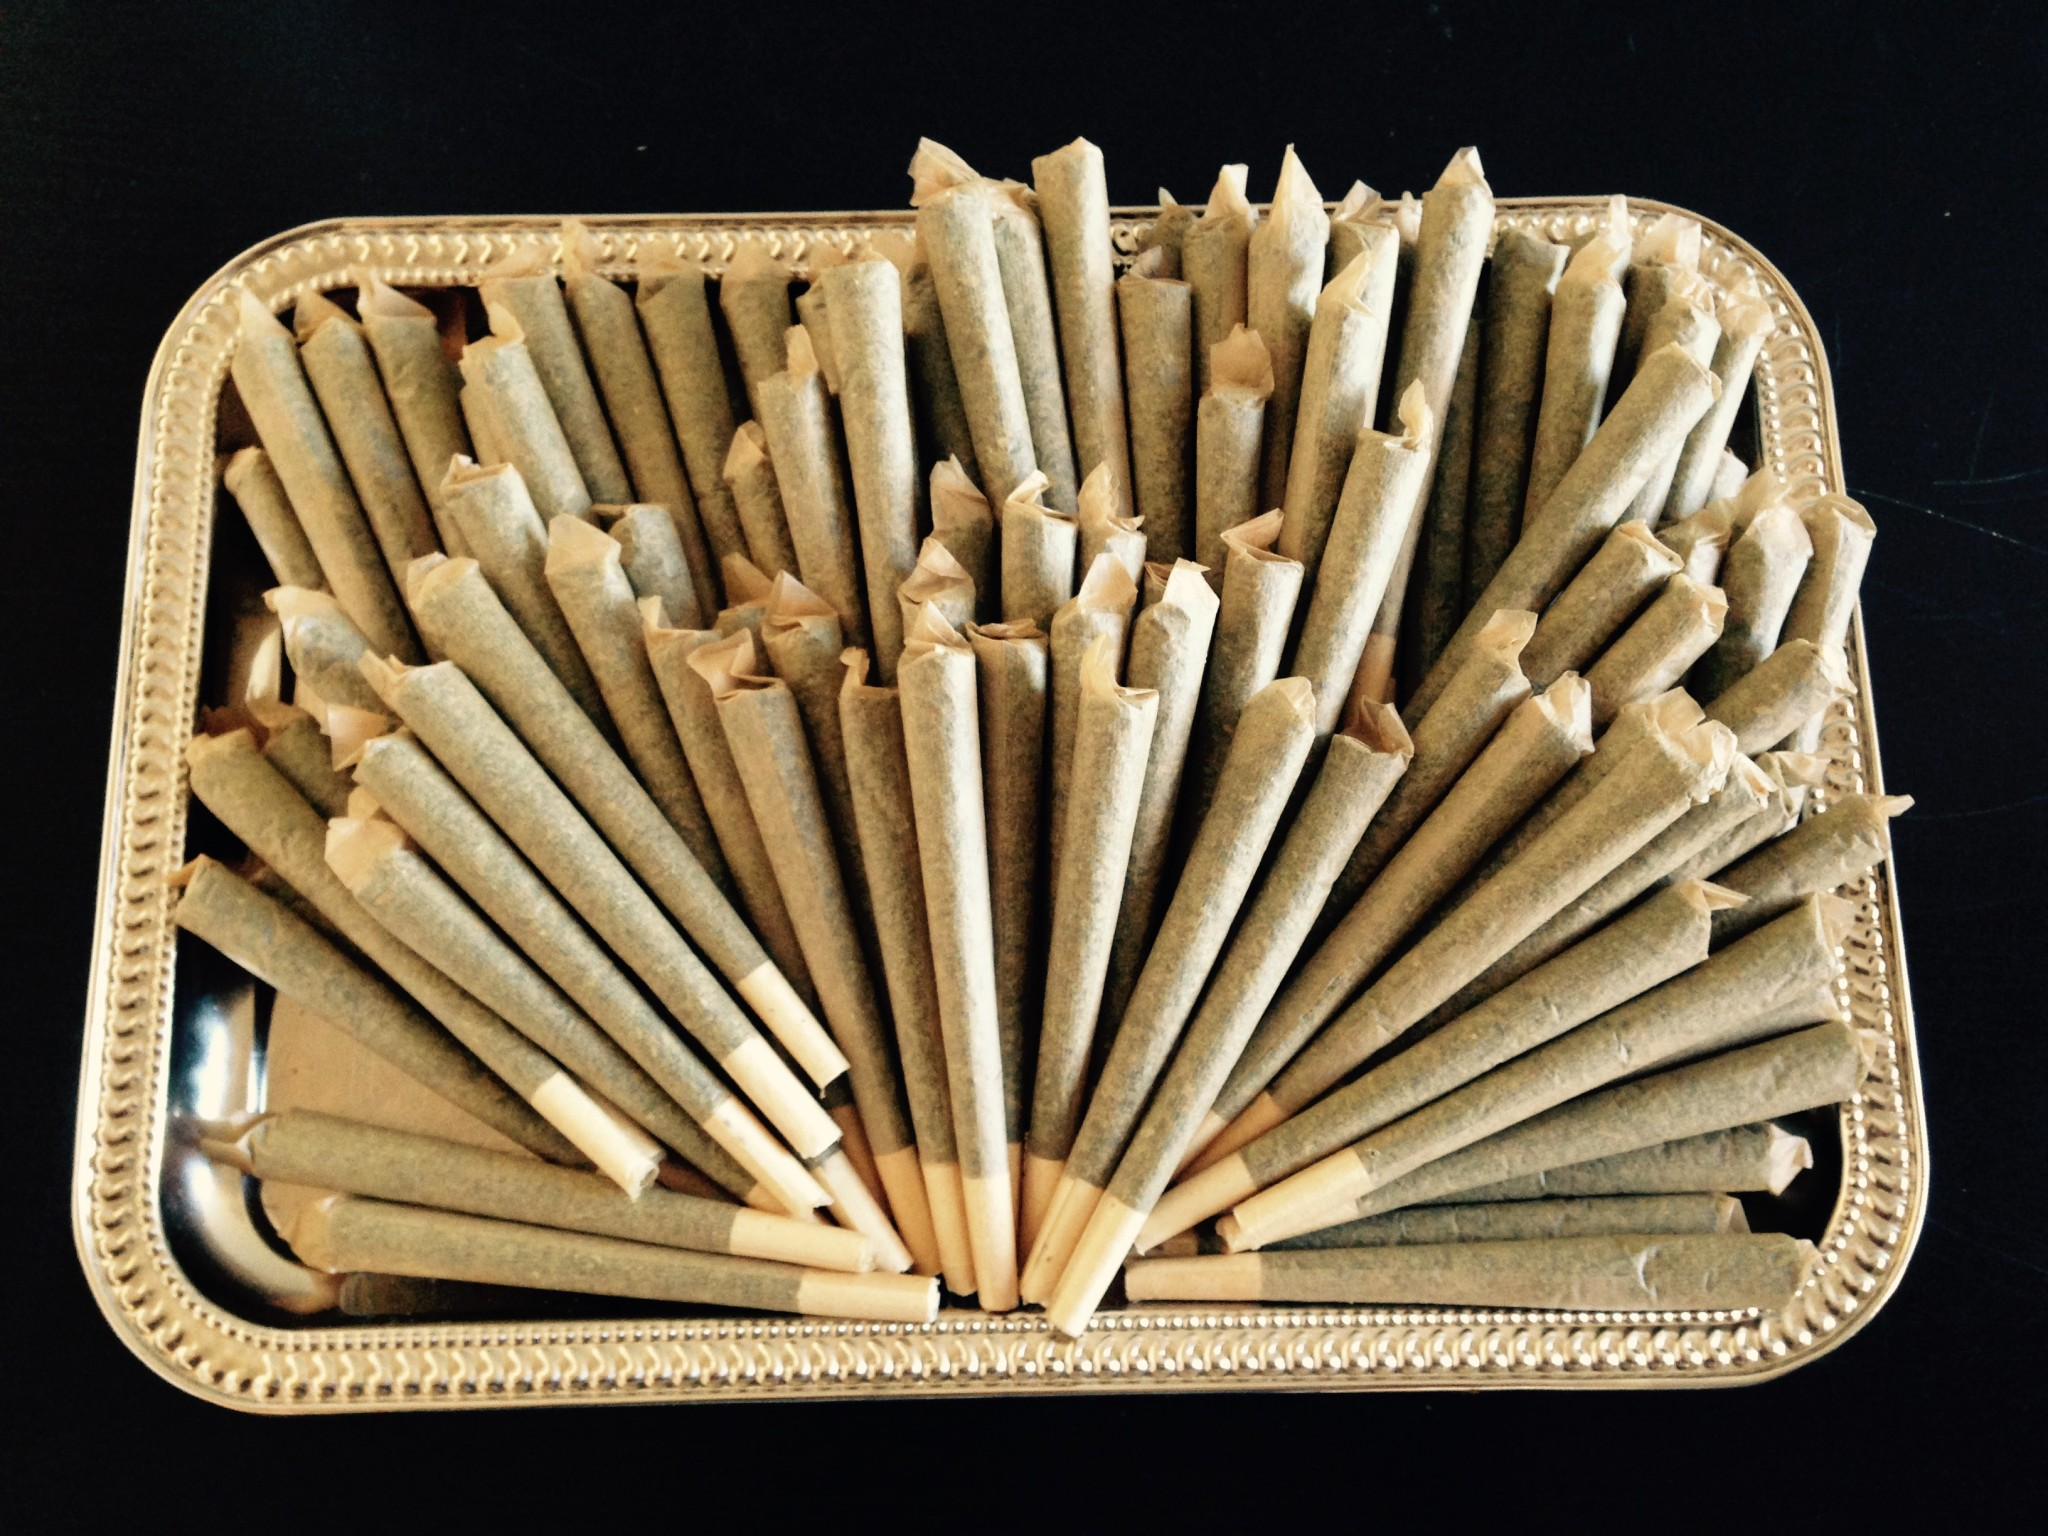 Top 5 Best Joint Roller For Weed Smoke Weed Inc